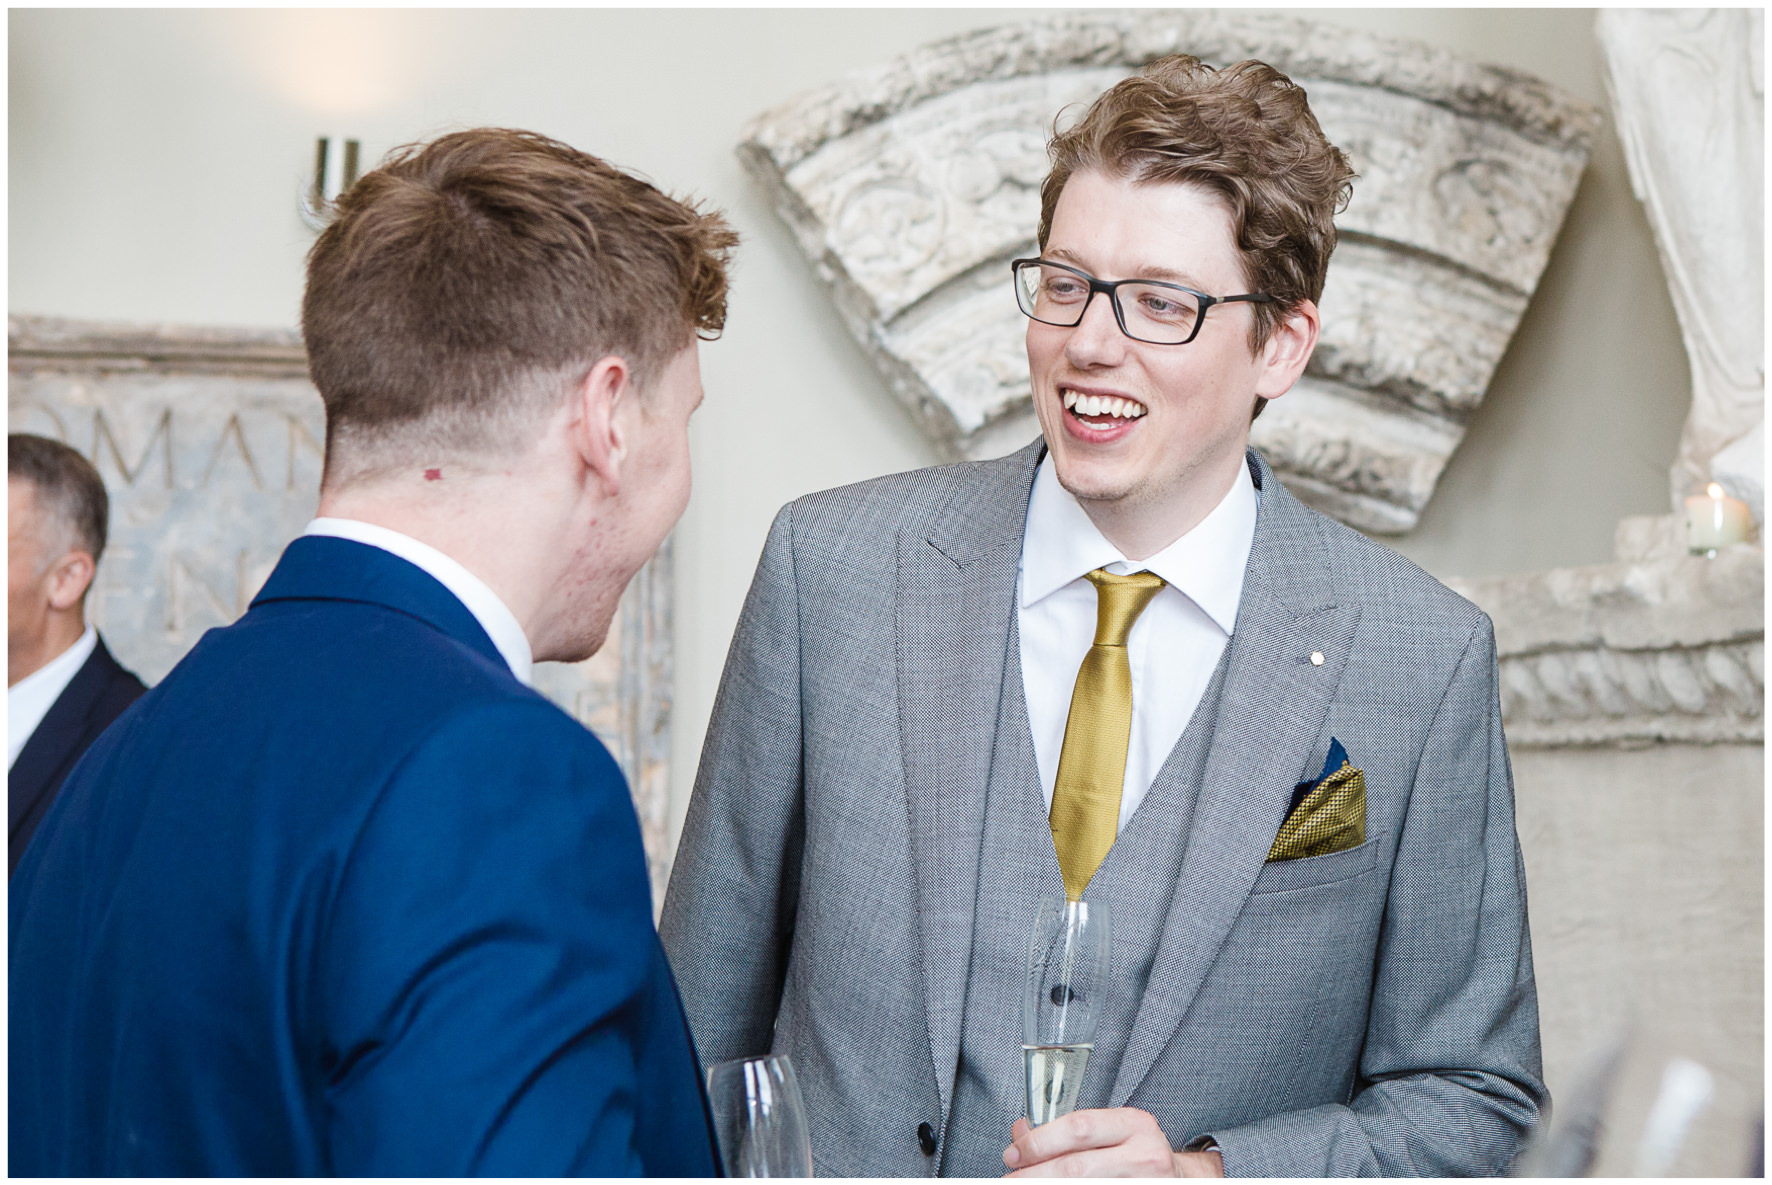 Lucy Davenport Photography, Aynhoe Park, Oxfordshire, wedding venue, Rock My Wedding, Orangery, guests drinks reception